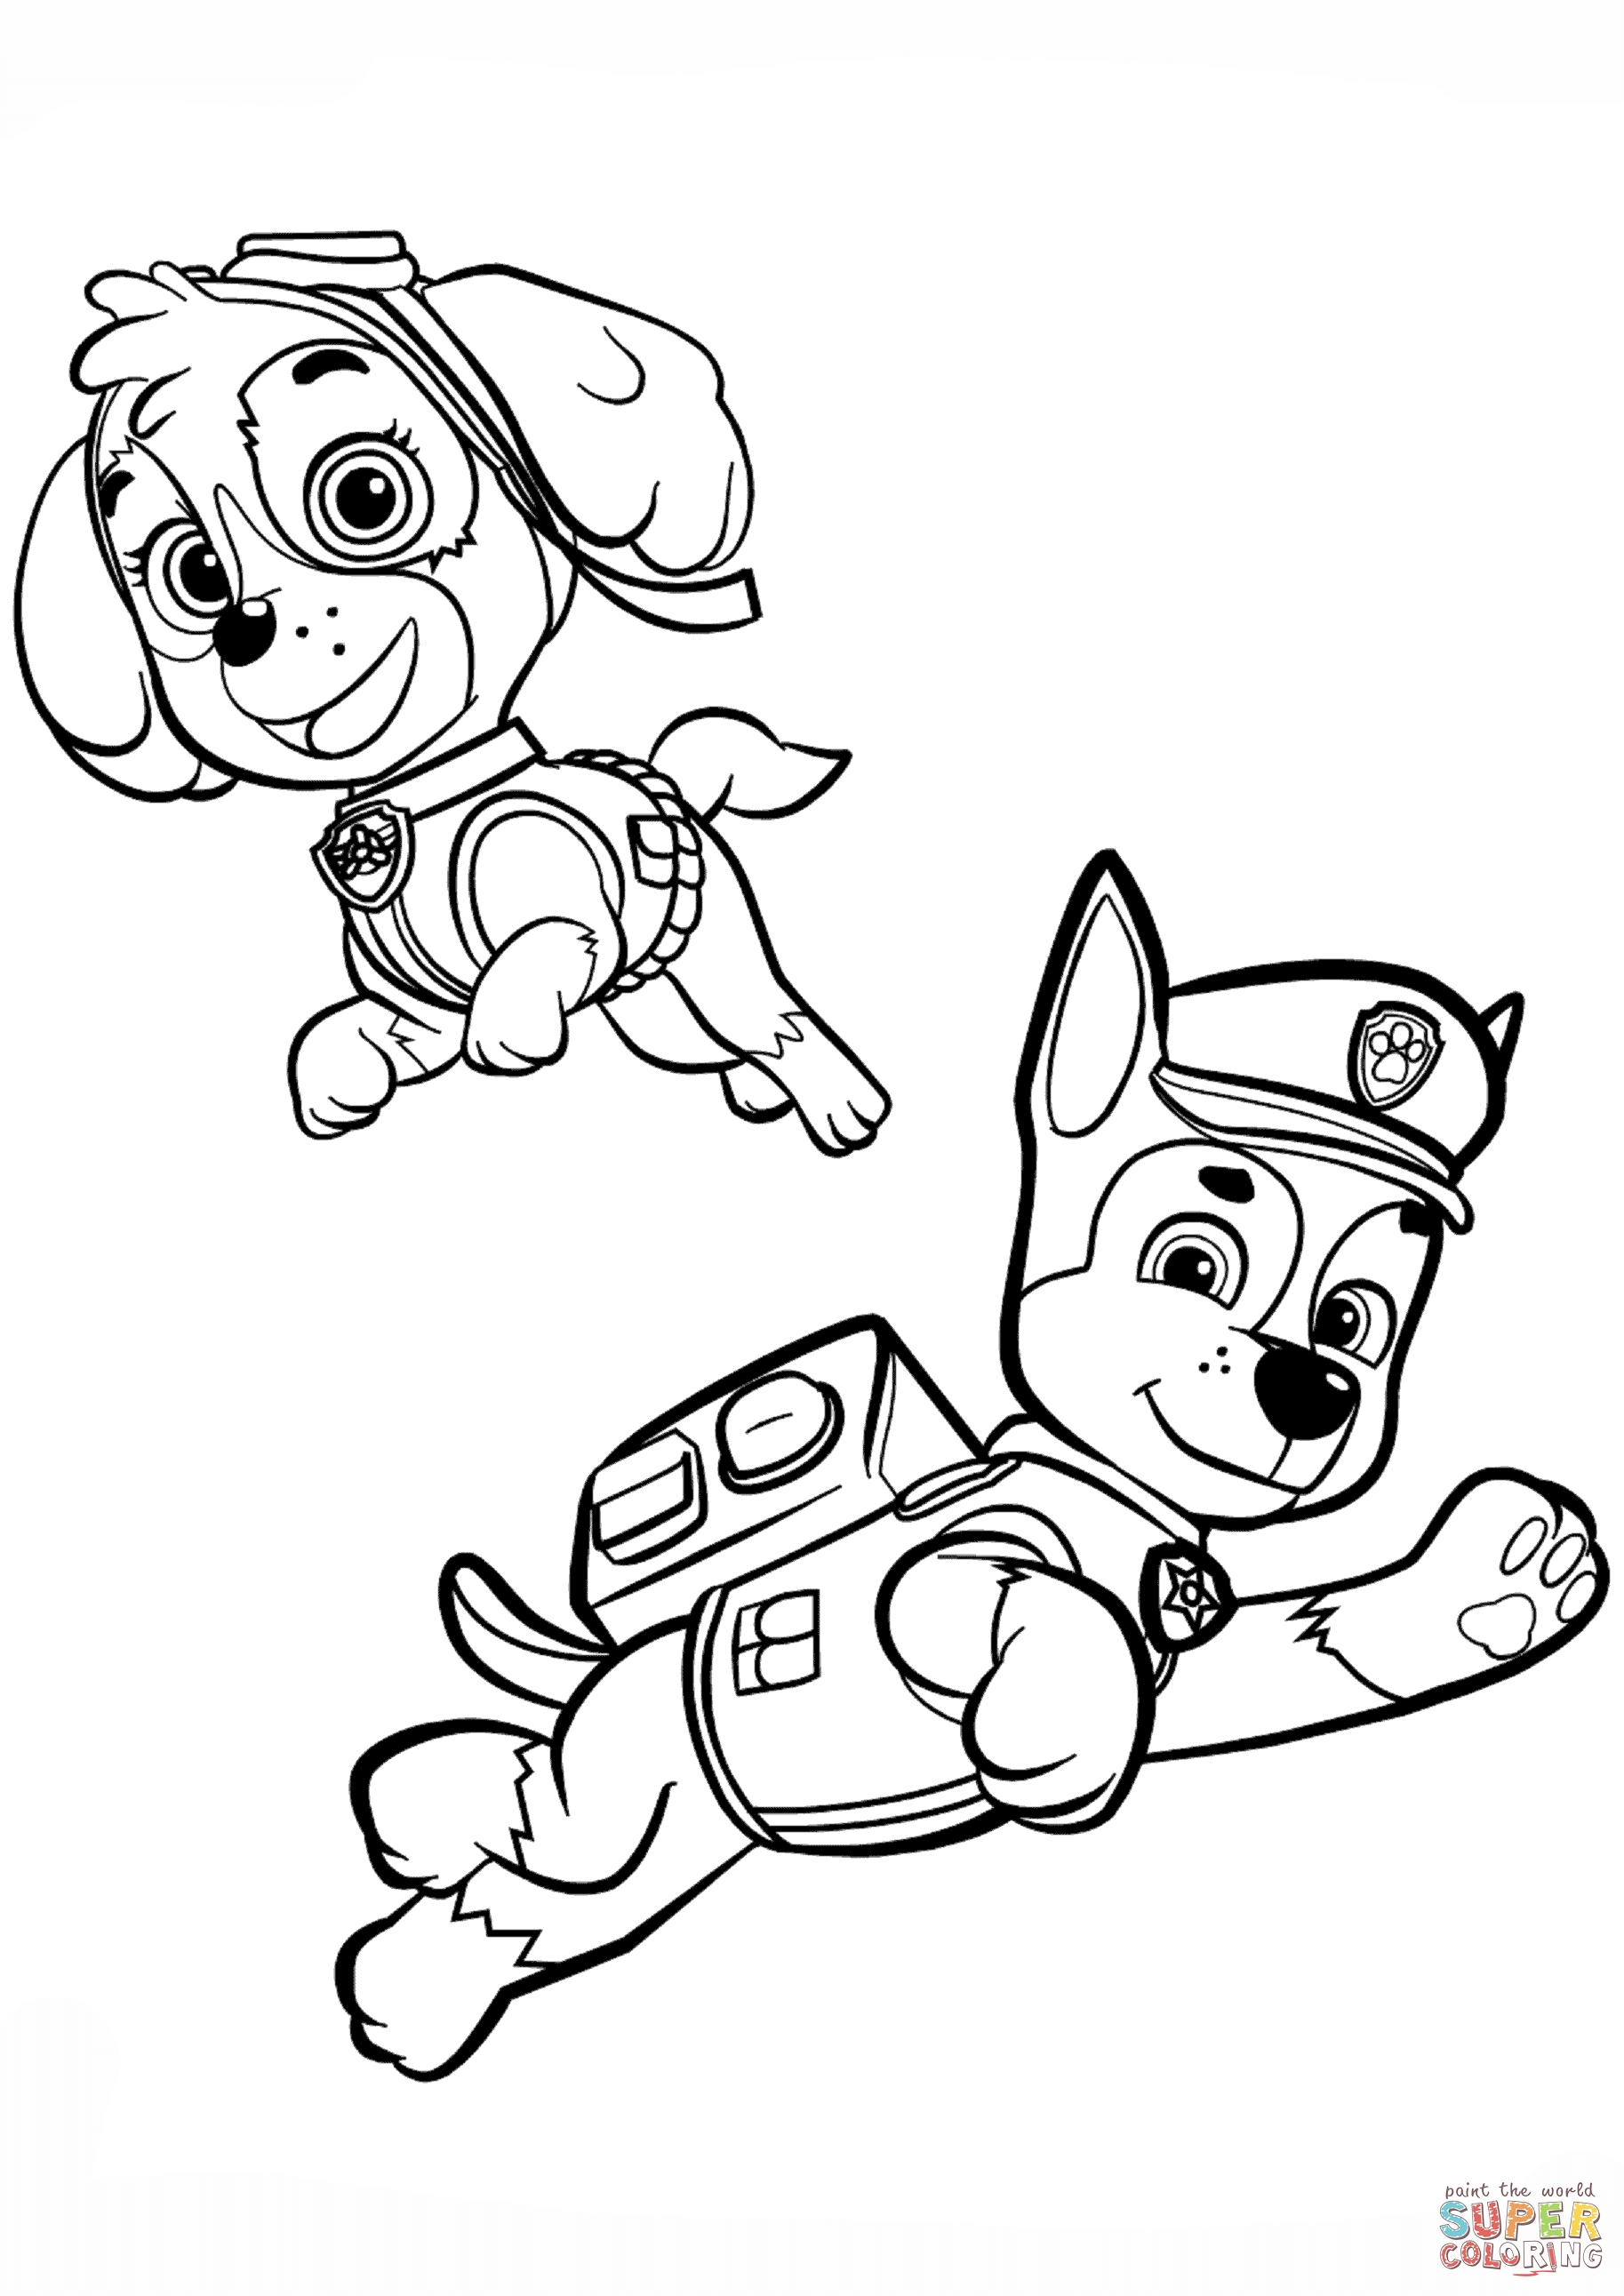 chase coloring page - chase and skye